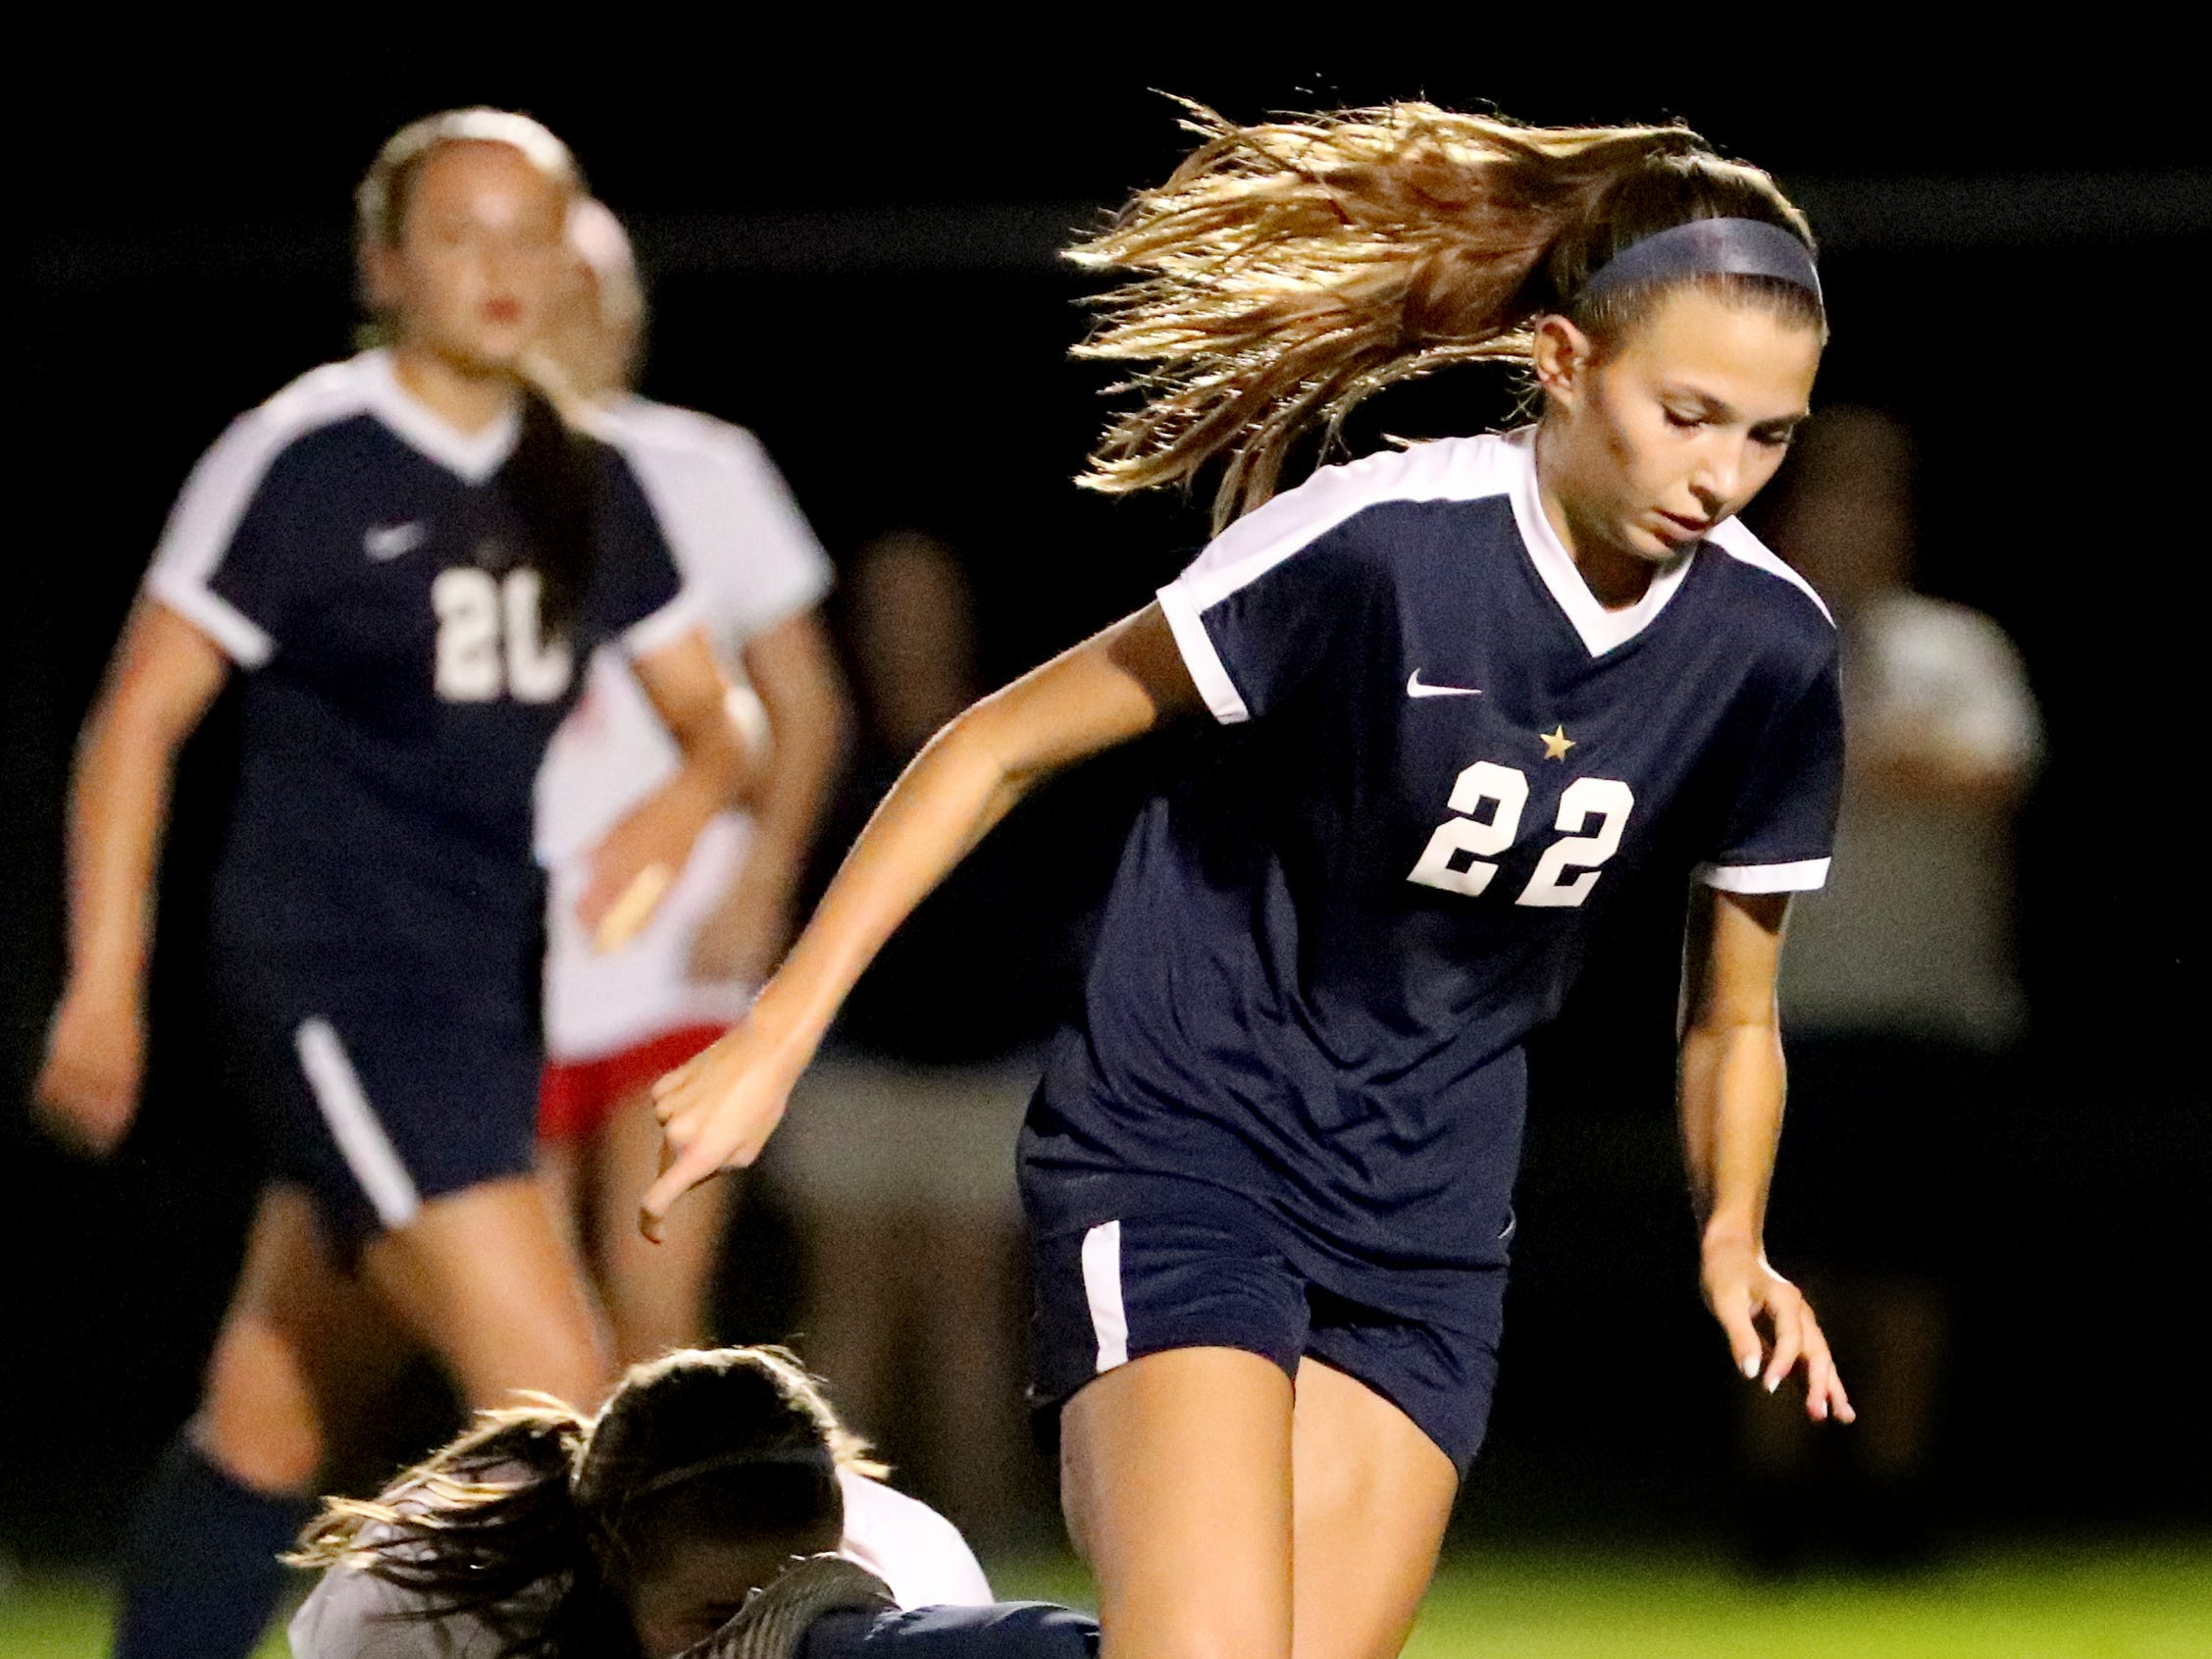 Siegel's Emily Baker (22) moves the ball down the field in the semifinals of the 7-AAA Soccer Tournament, on Tuesday,  Oct. 09, 2018 at the Siegel Soccer Complex, against Oakland.